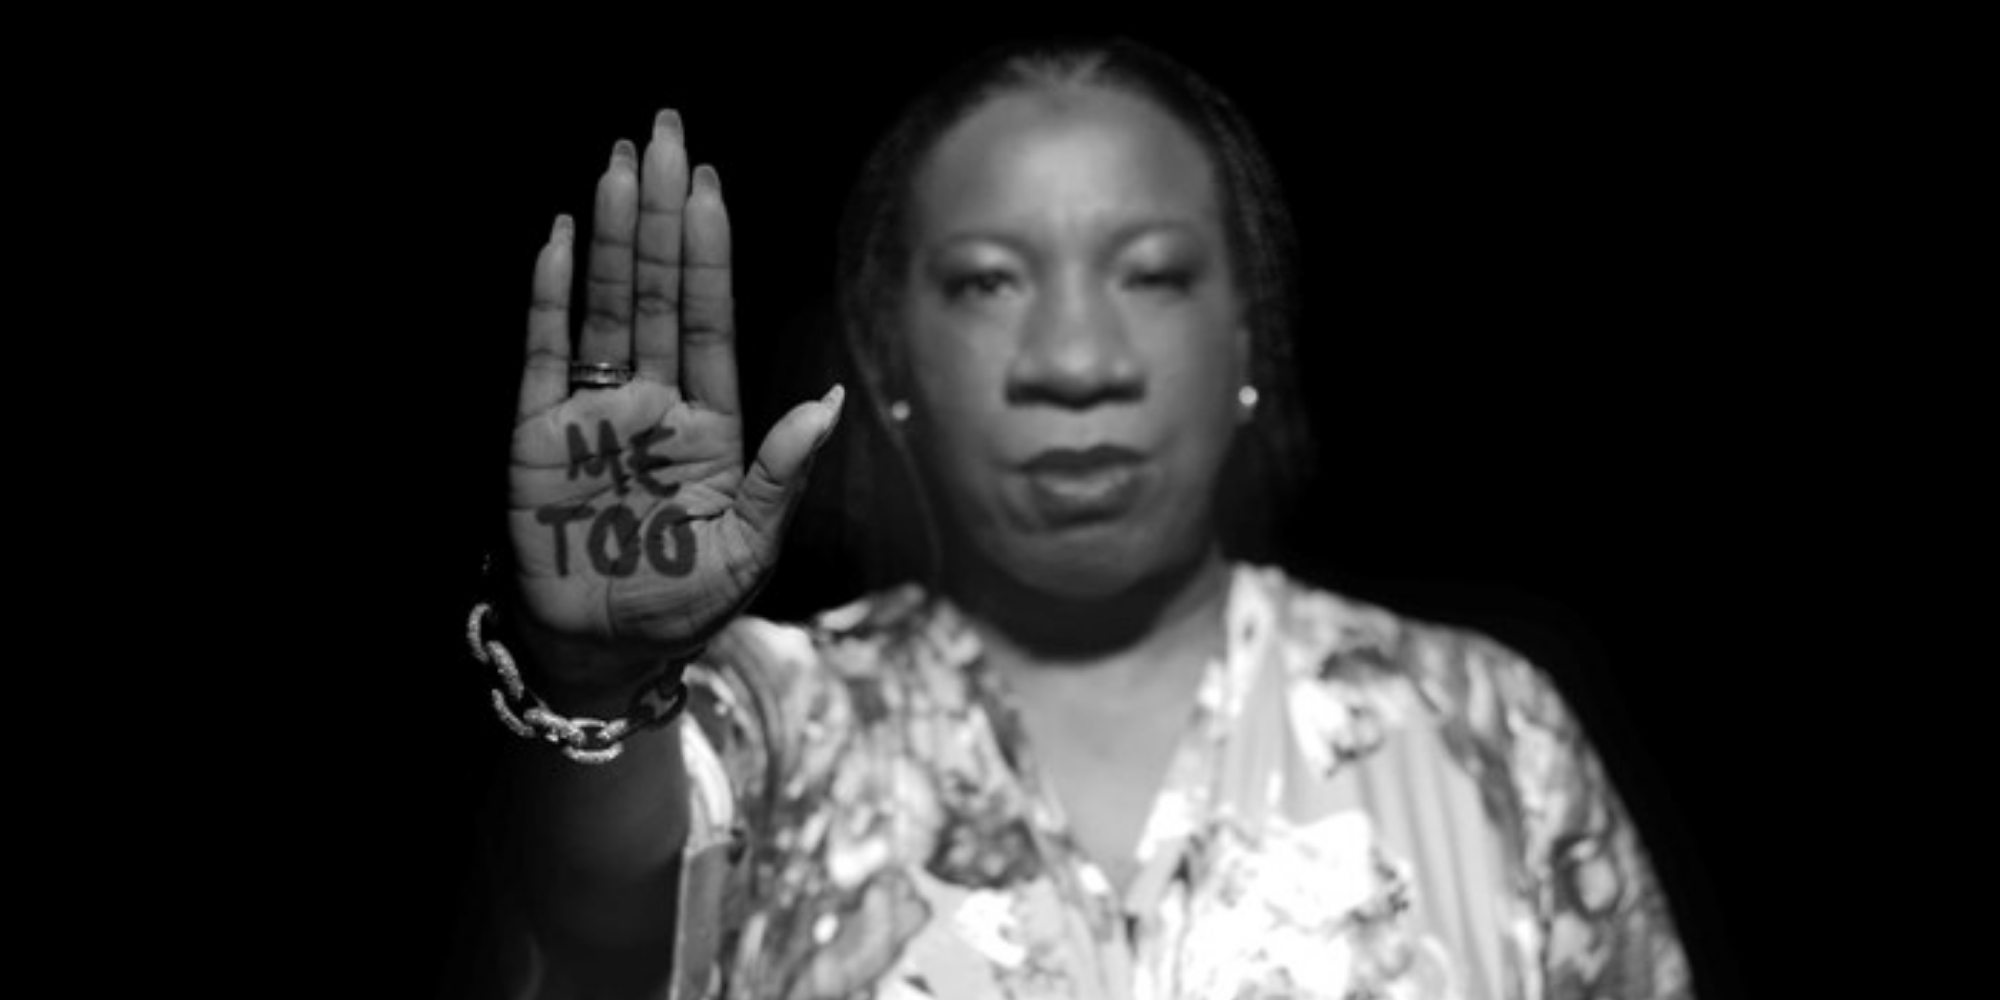 Tarana Burke: A Survivor, Fighter, and Activist